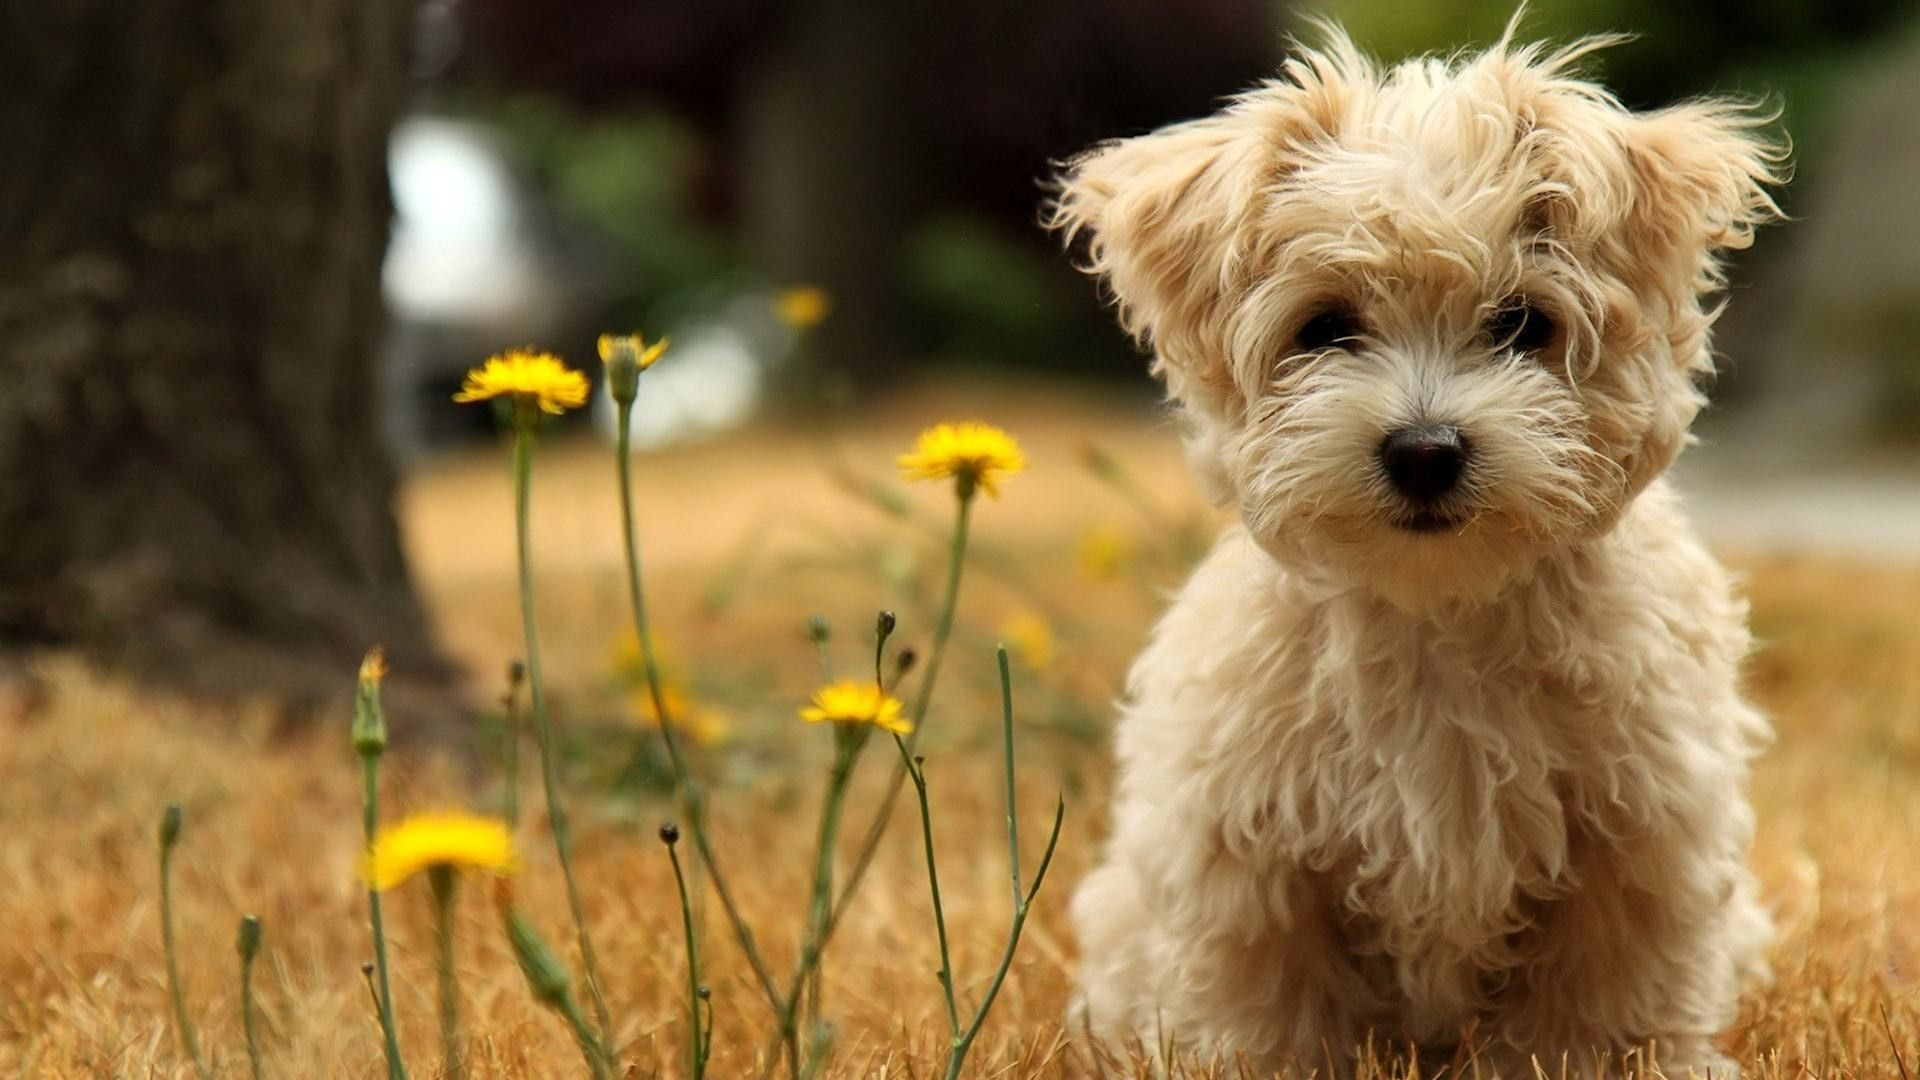 Find Best Latest Wallpapers For Pc In Hd For Your Pc Desktop Background And Mobile Phones Dog Breed Photos Cute Dog Wallpaper Cute Animals